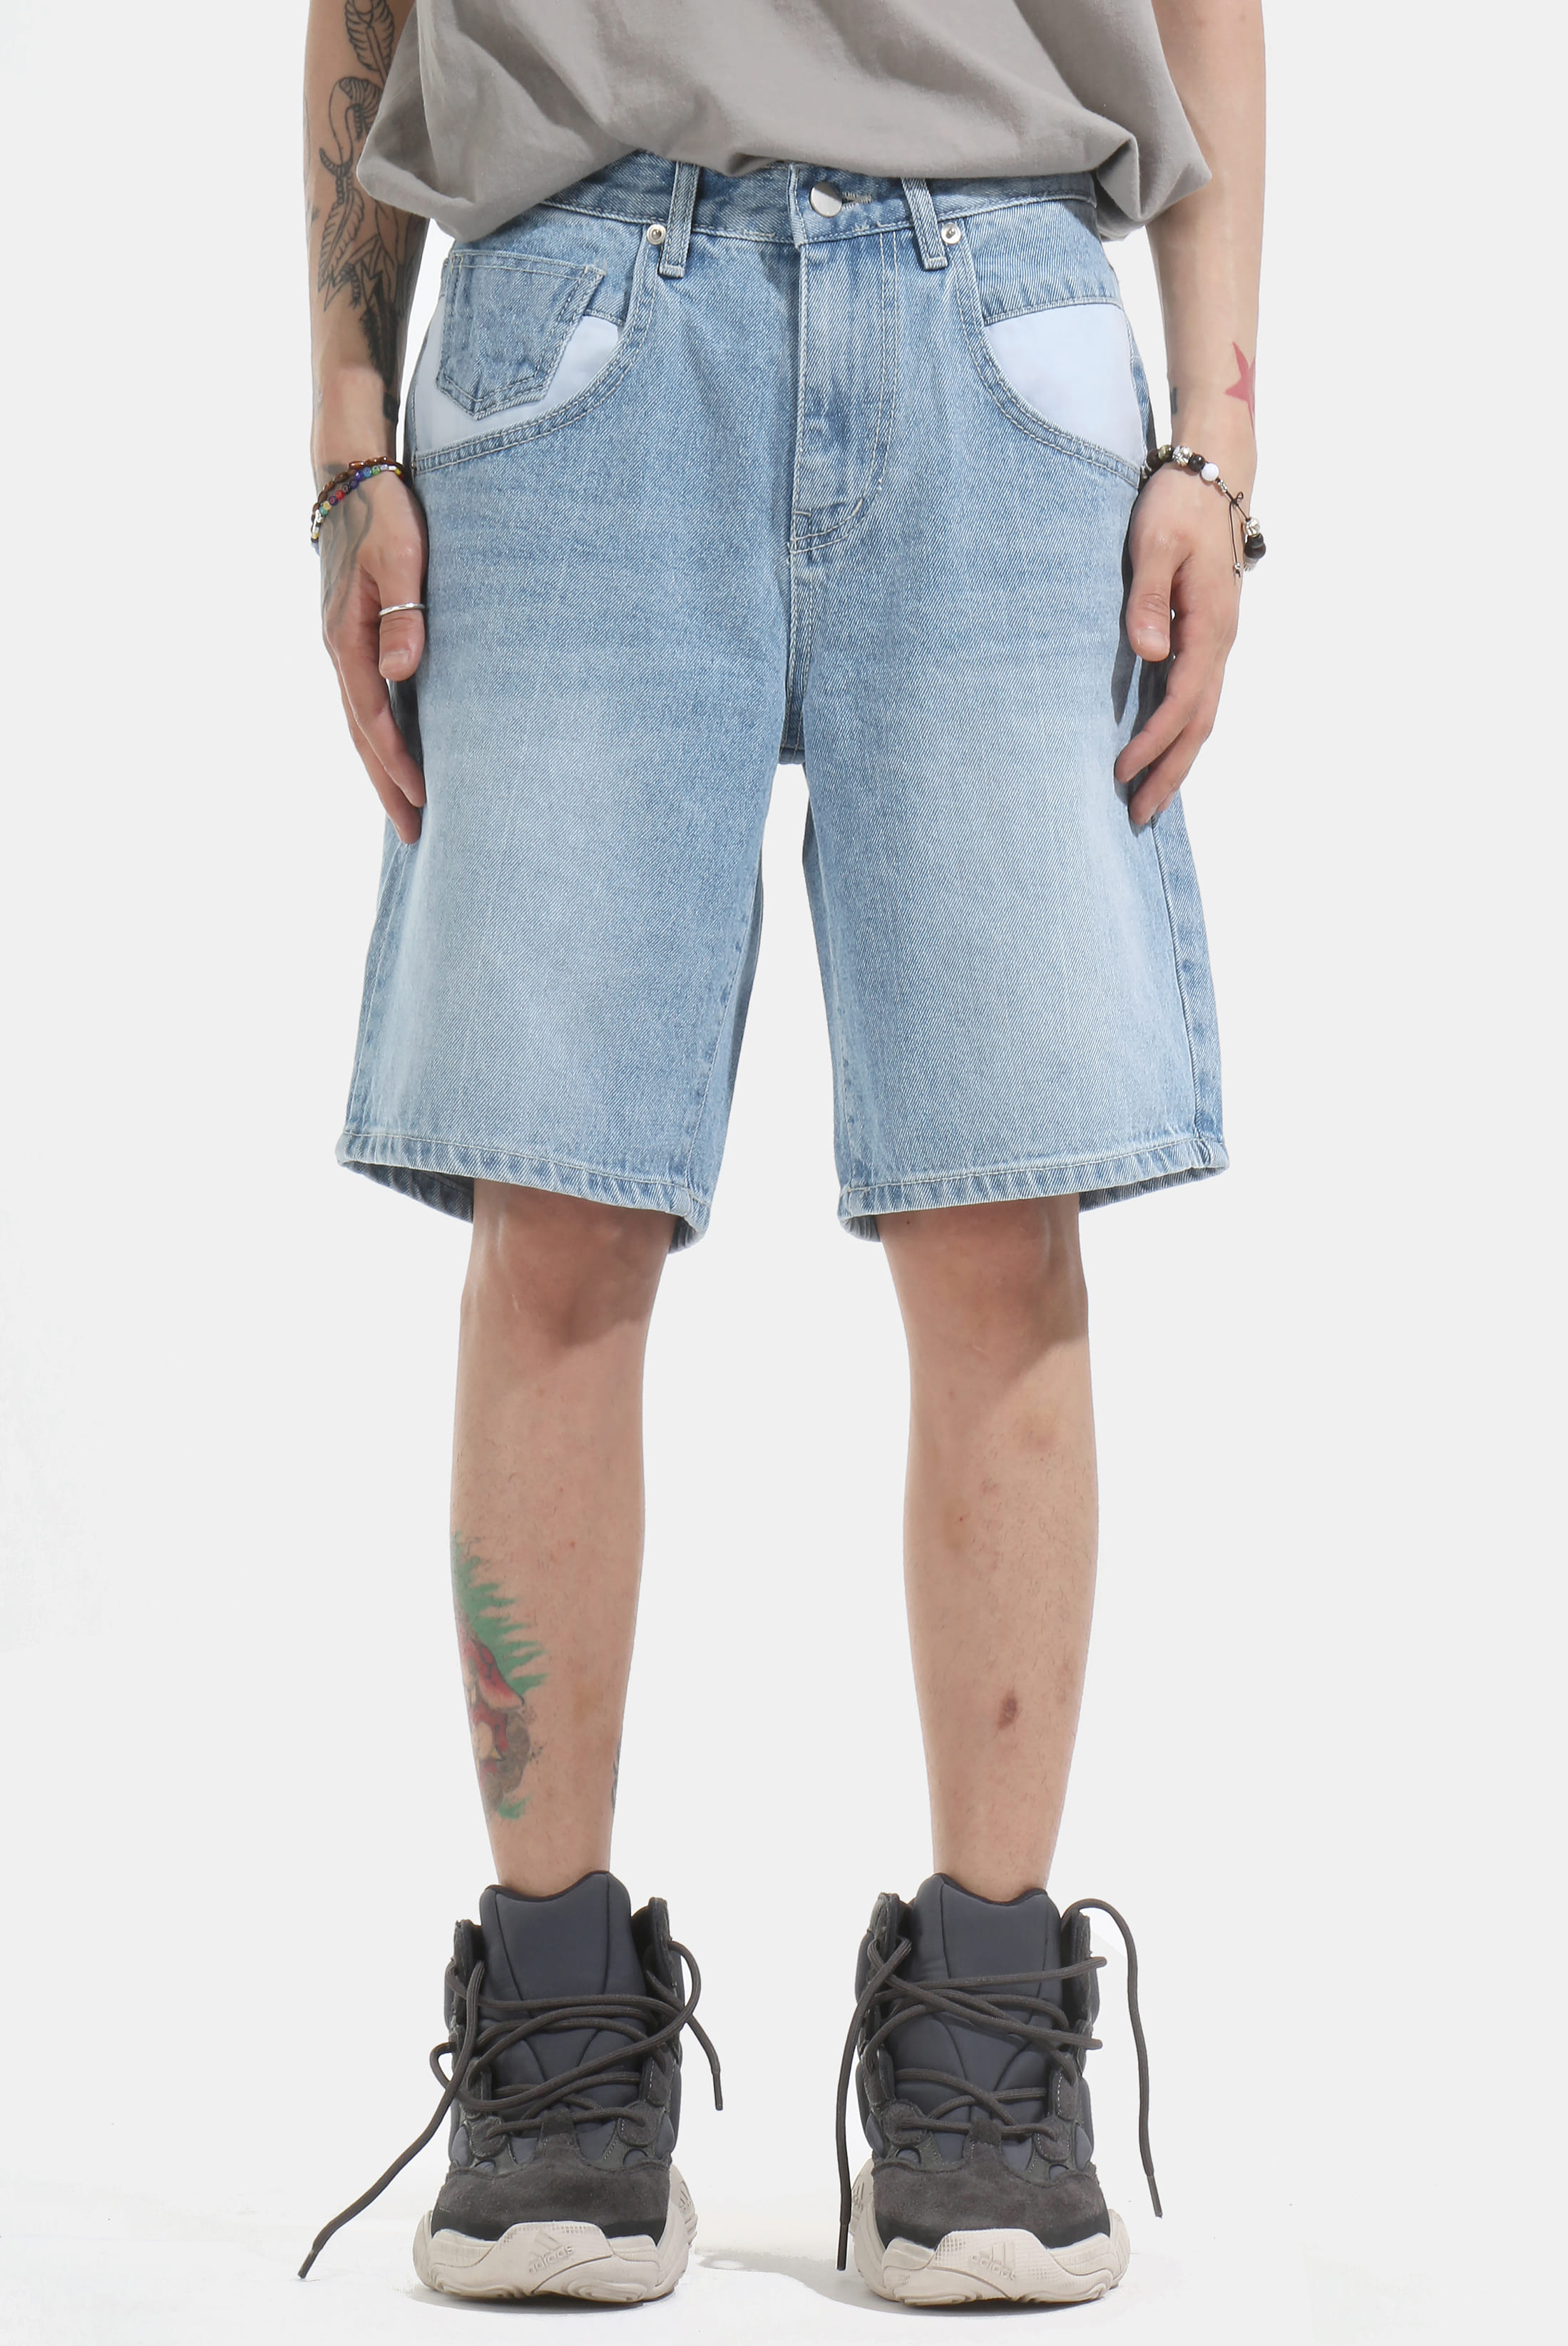 Contrast_Poket Half Denim_Pants